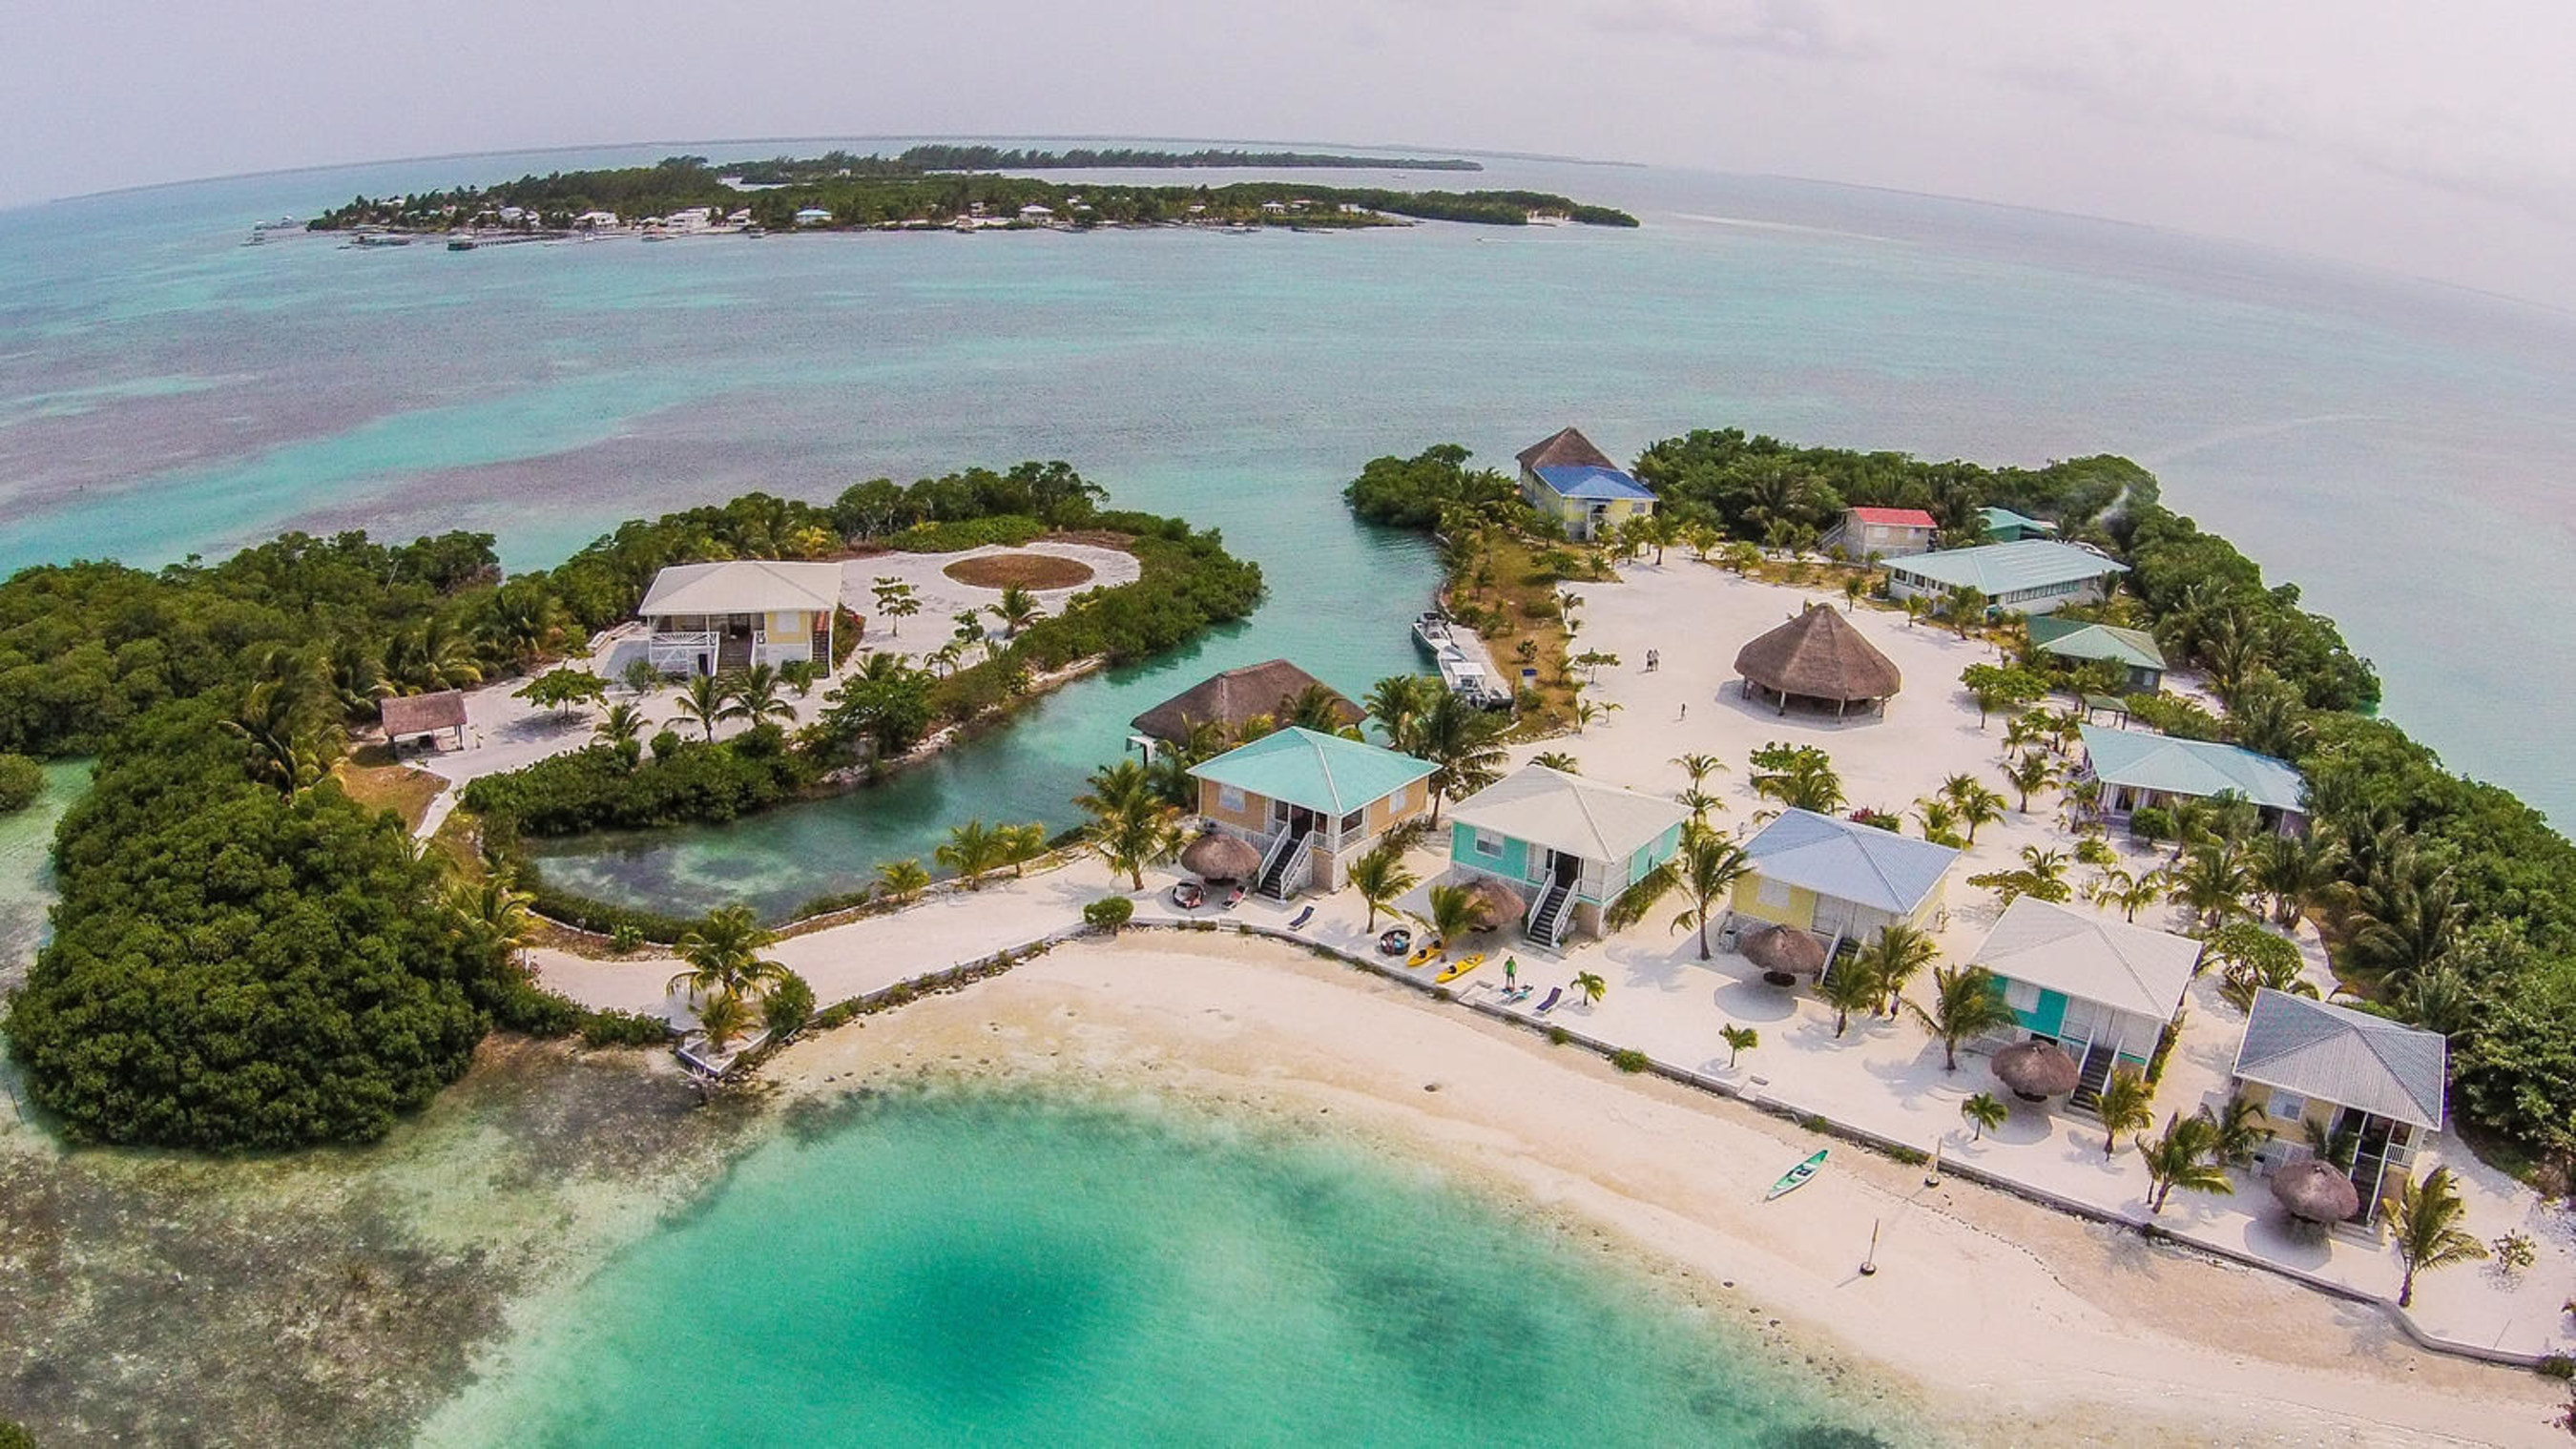 Belize Real Estate Projects Lucrative Value in Caribbean's Emerging Luxury Marketplace, New Report Shows